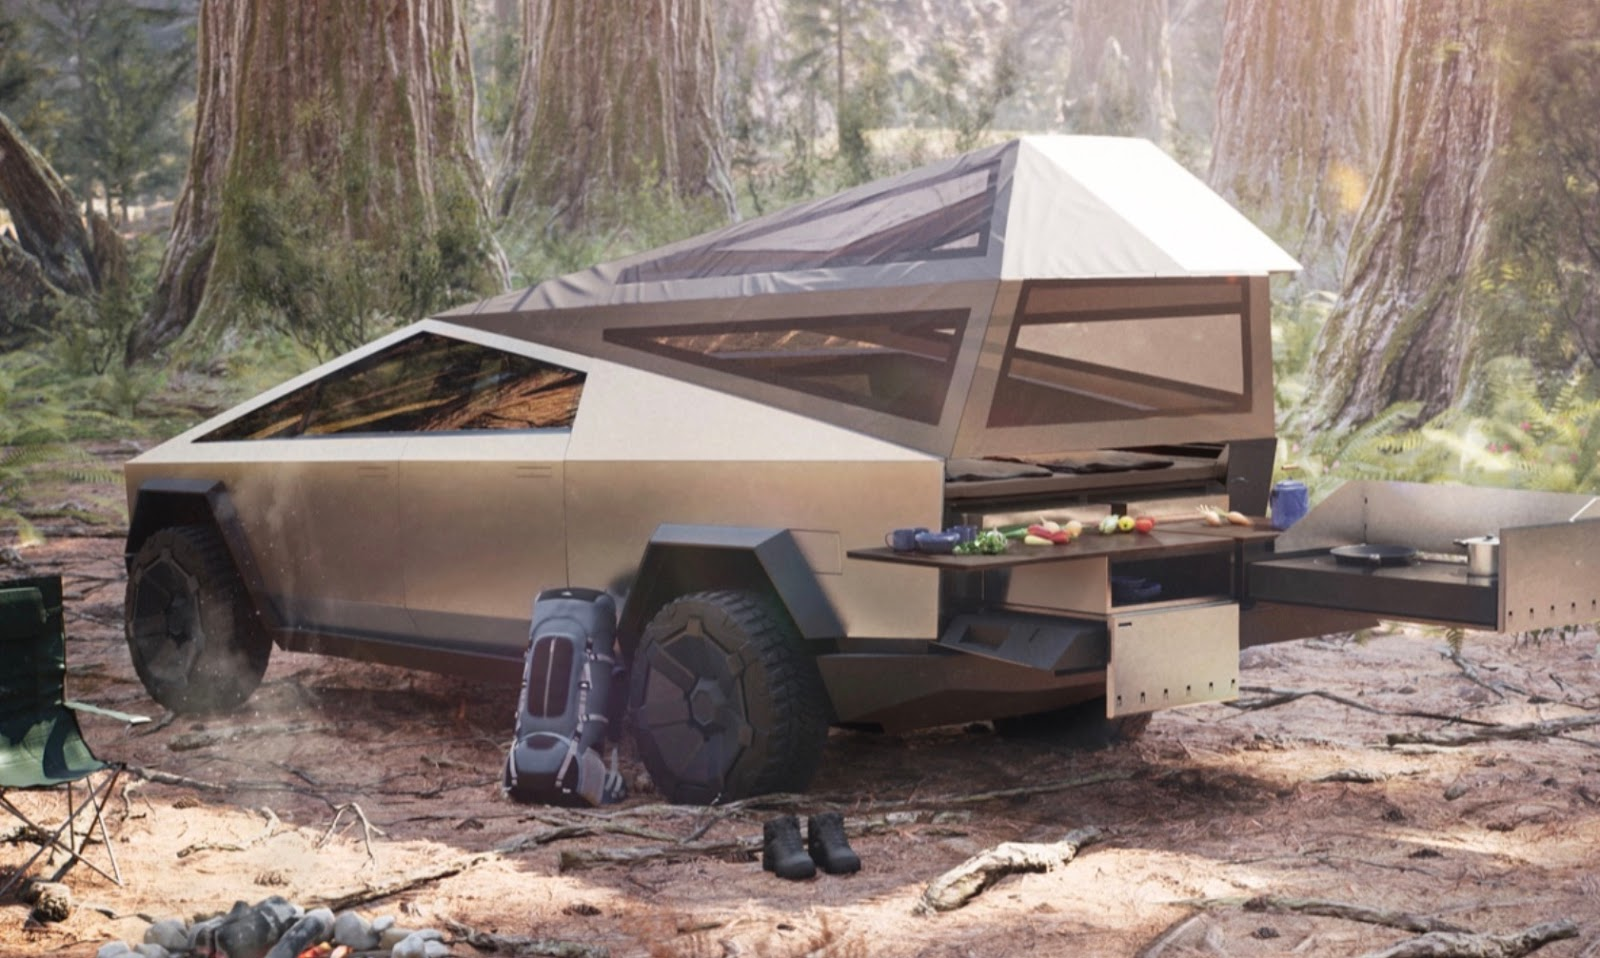 Tesla cybertruck used for camping and tailgate